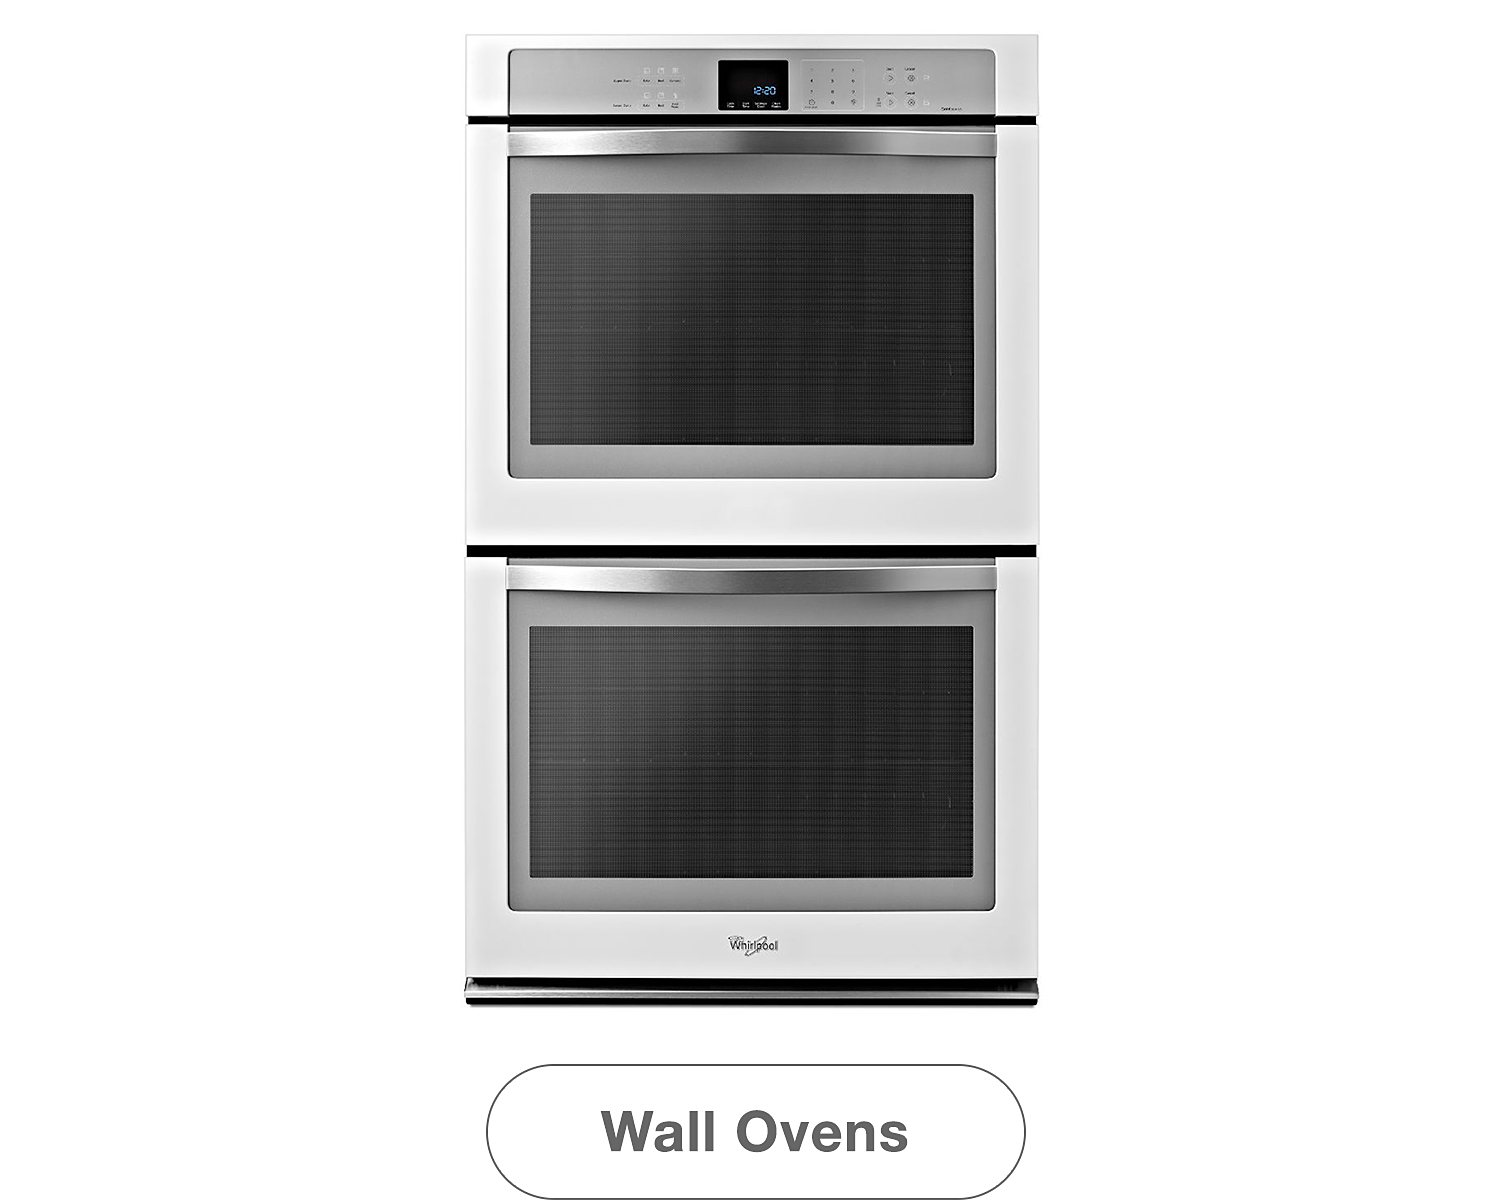 Whirlpool Wall Ovens